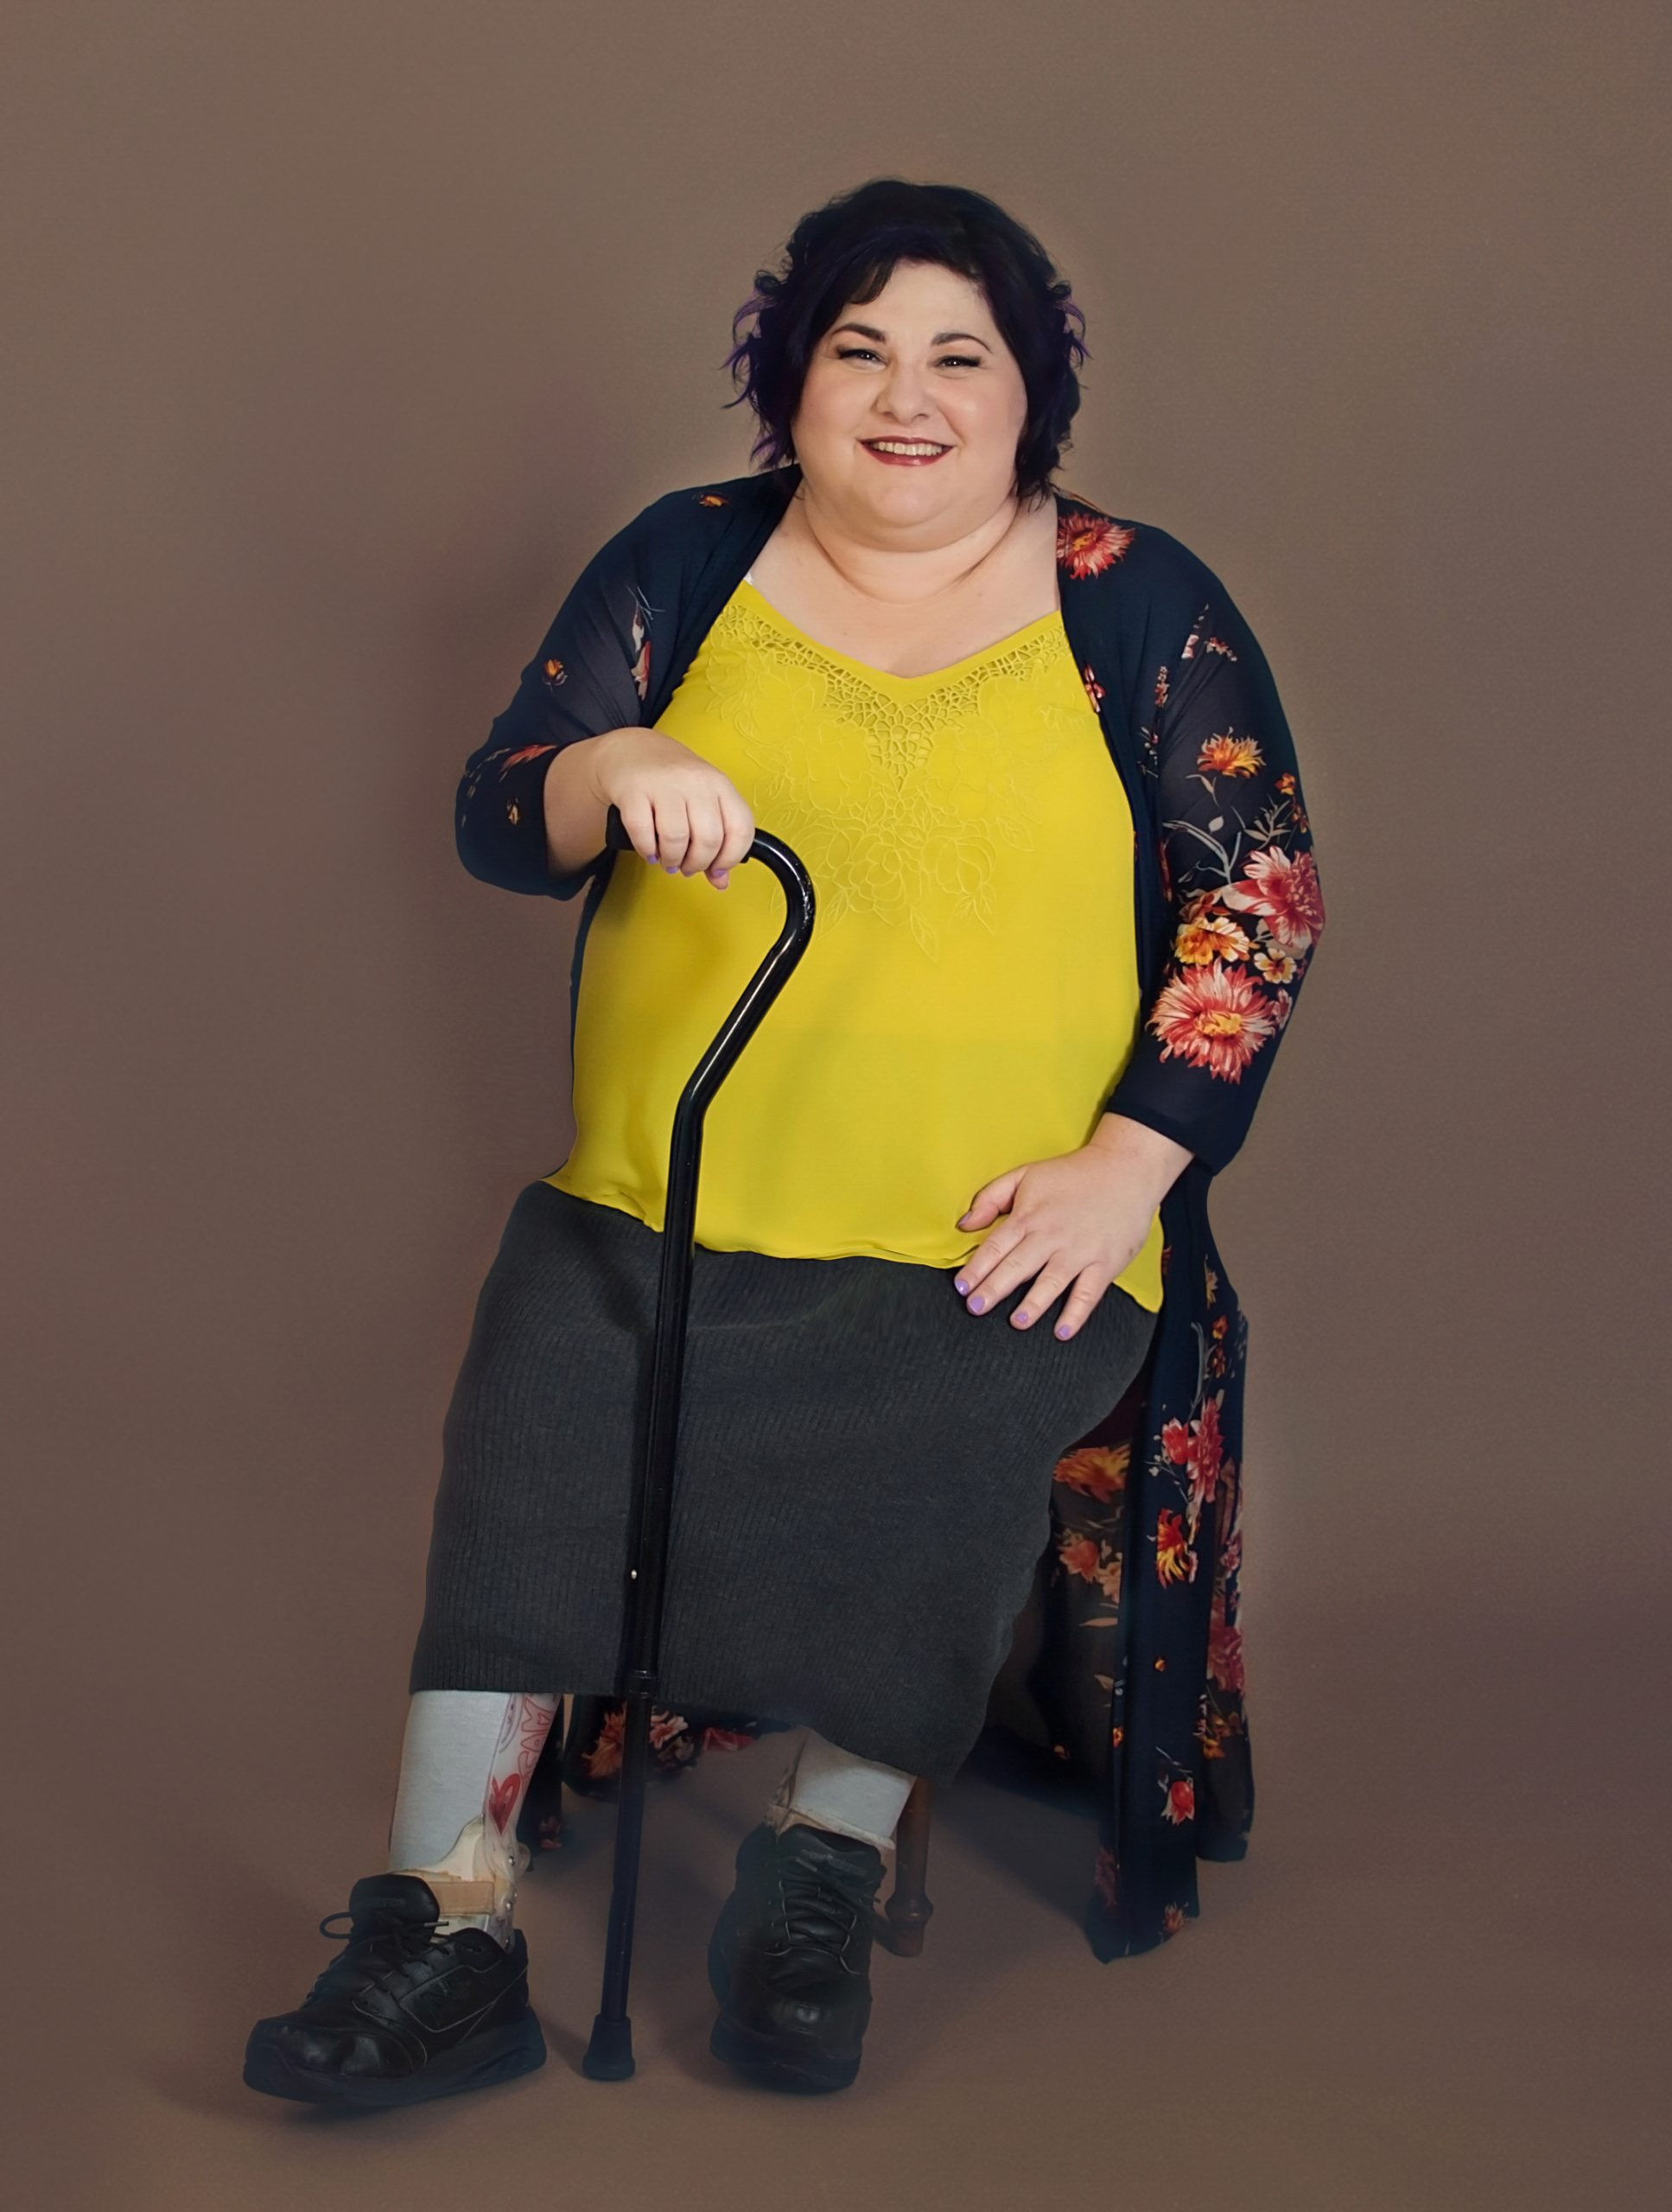 Picture of Donna Herrington sitting and holding her cane